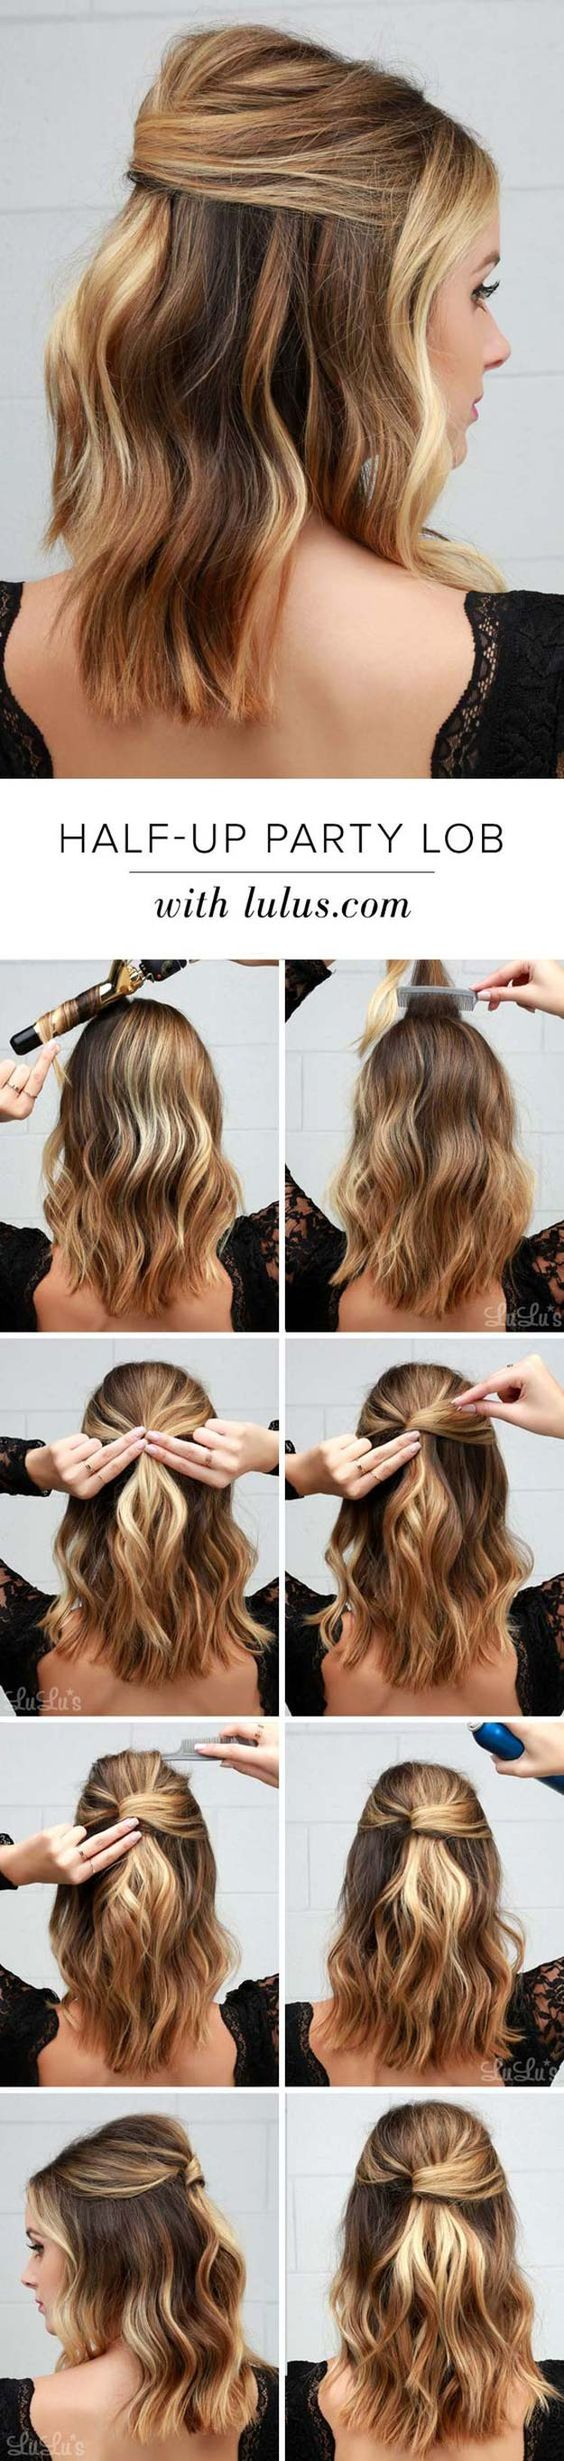 The best images about hair on pinterest peruvian hair medium